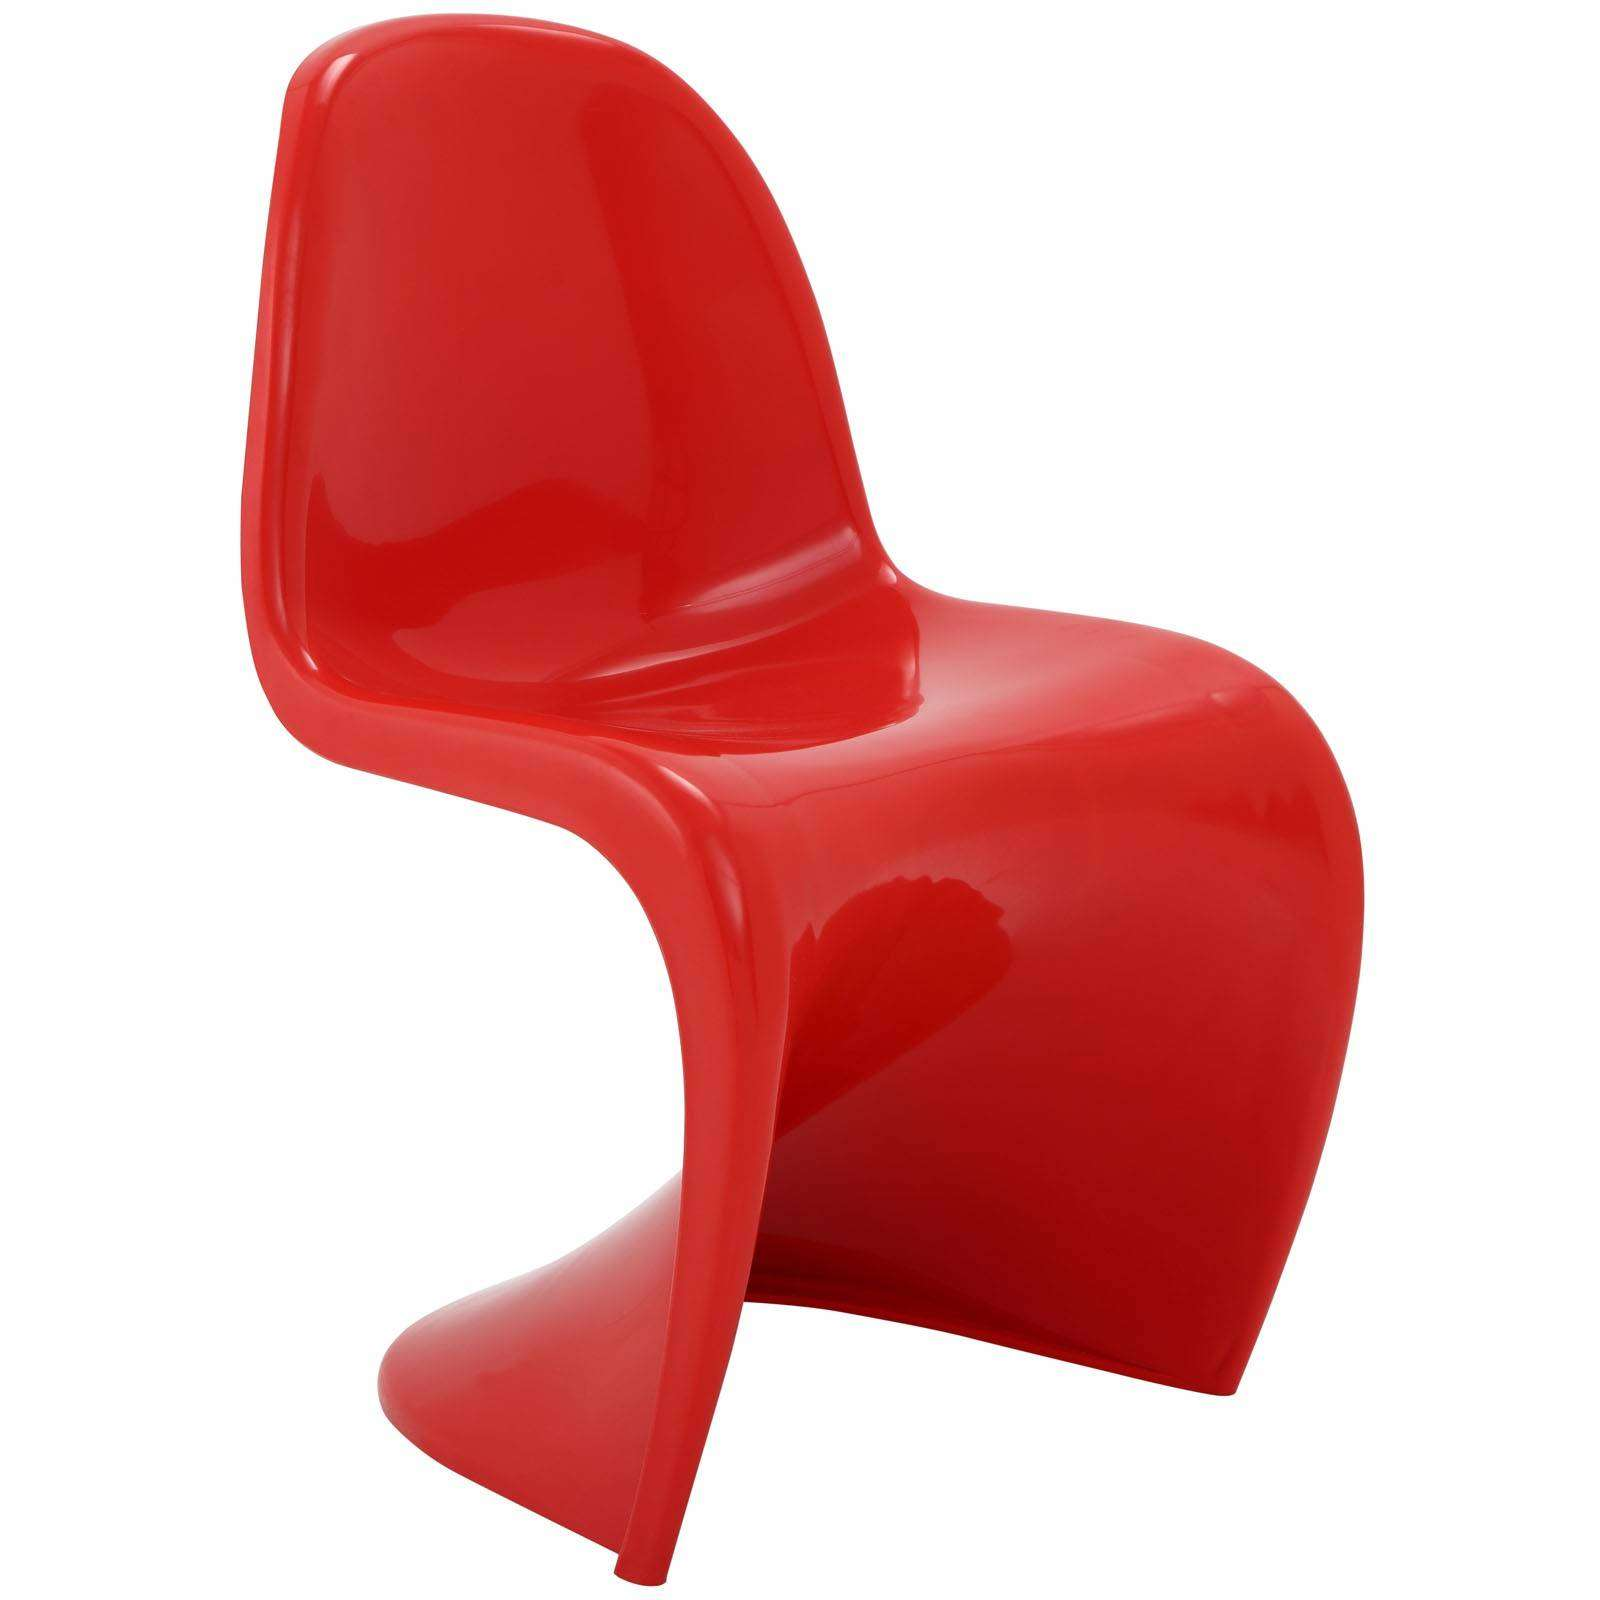 Panton Chairs Verner Panton Style Chair